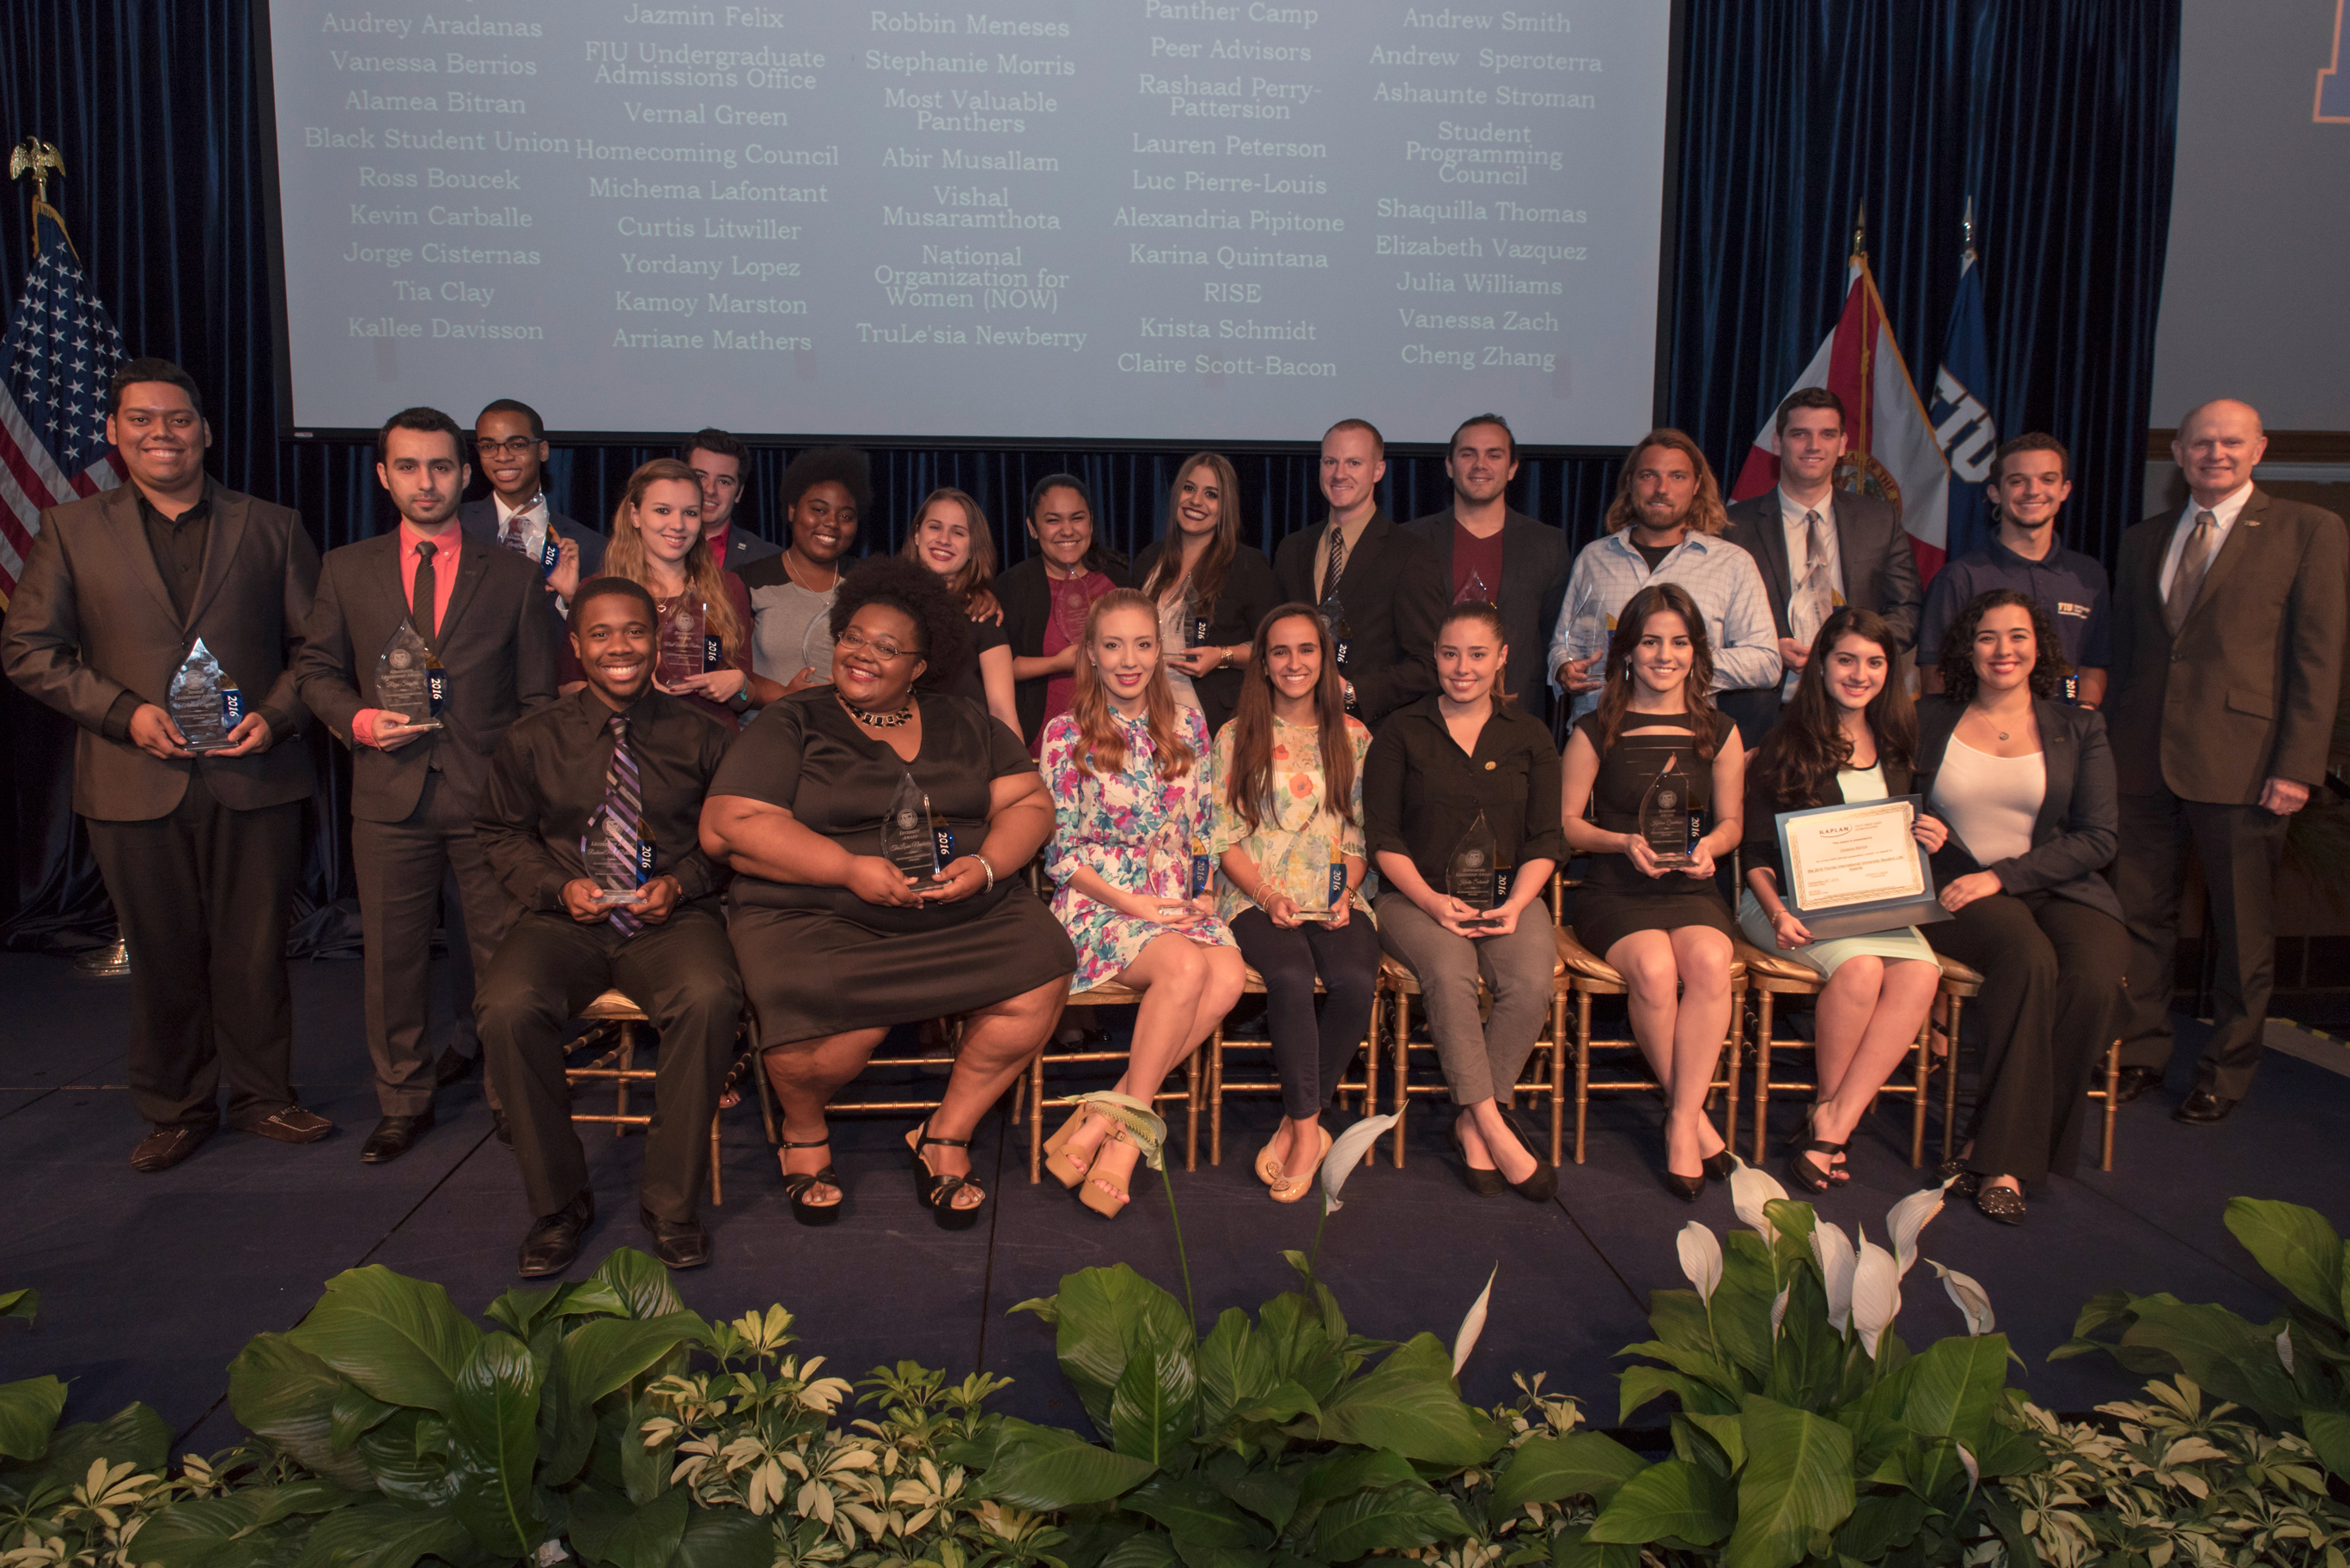 Students honored at 2016 Student Life Awards